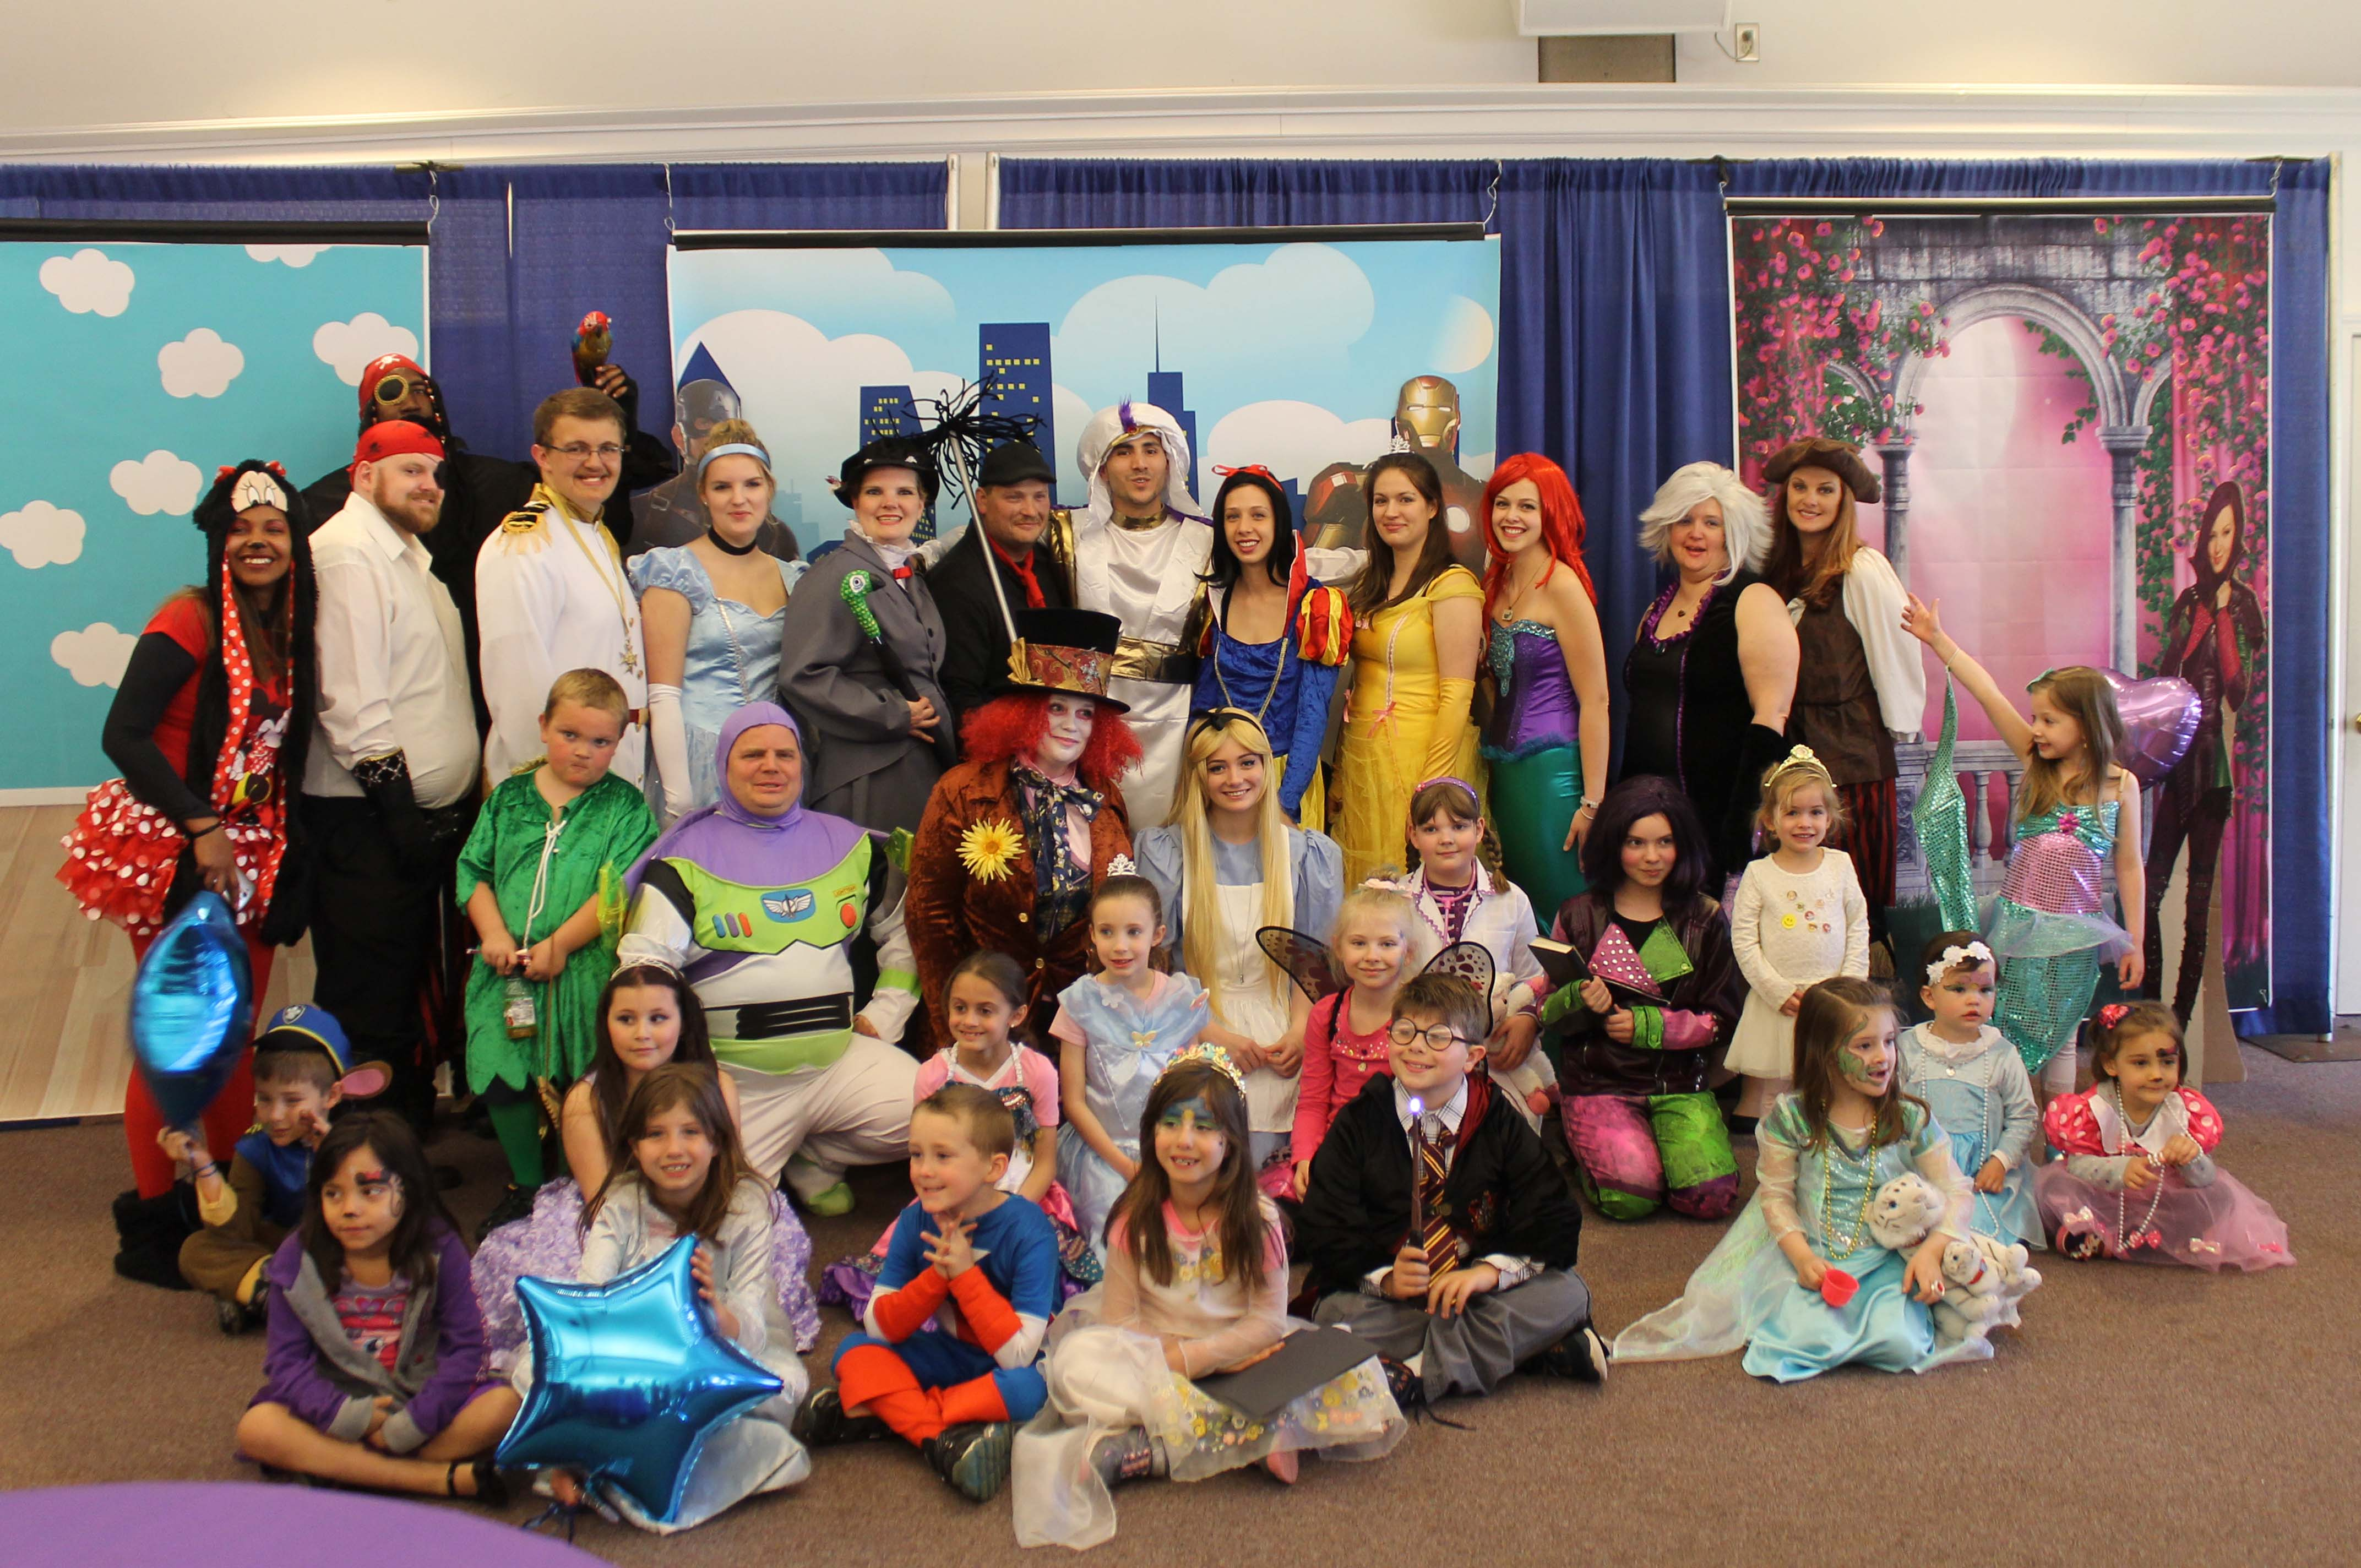 A group of adults and children pose for a group photo in costumes depicting fairy tale and cartoon characters.